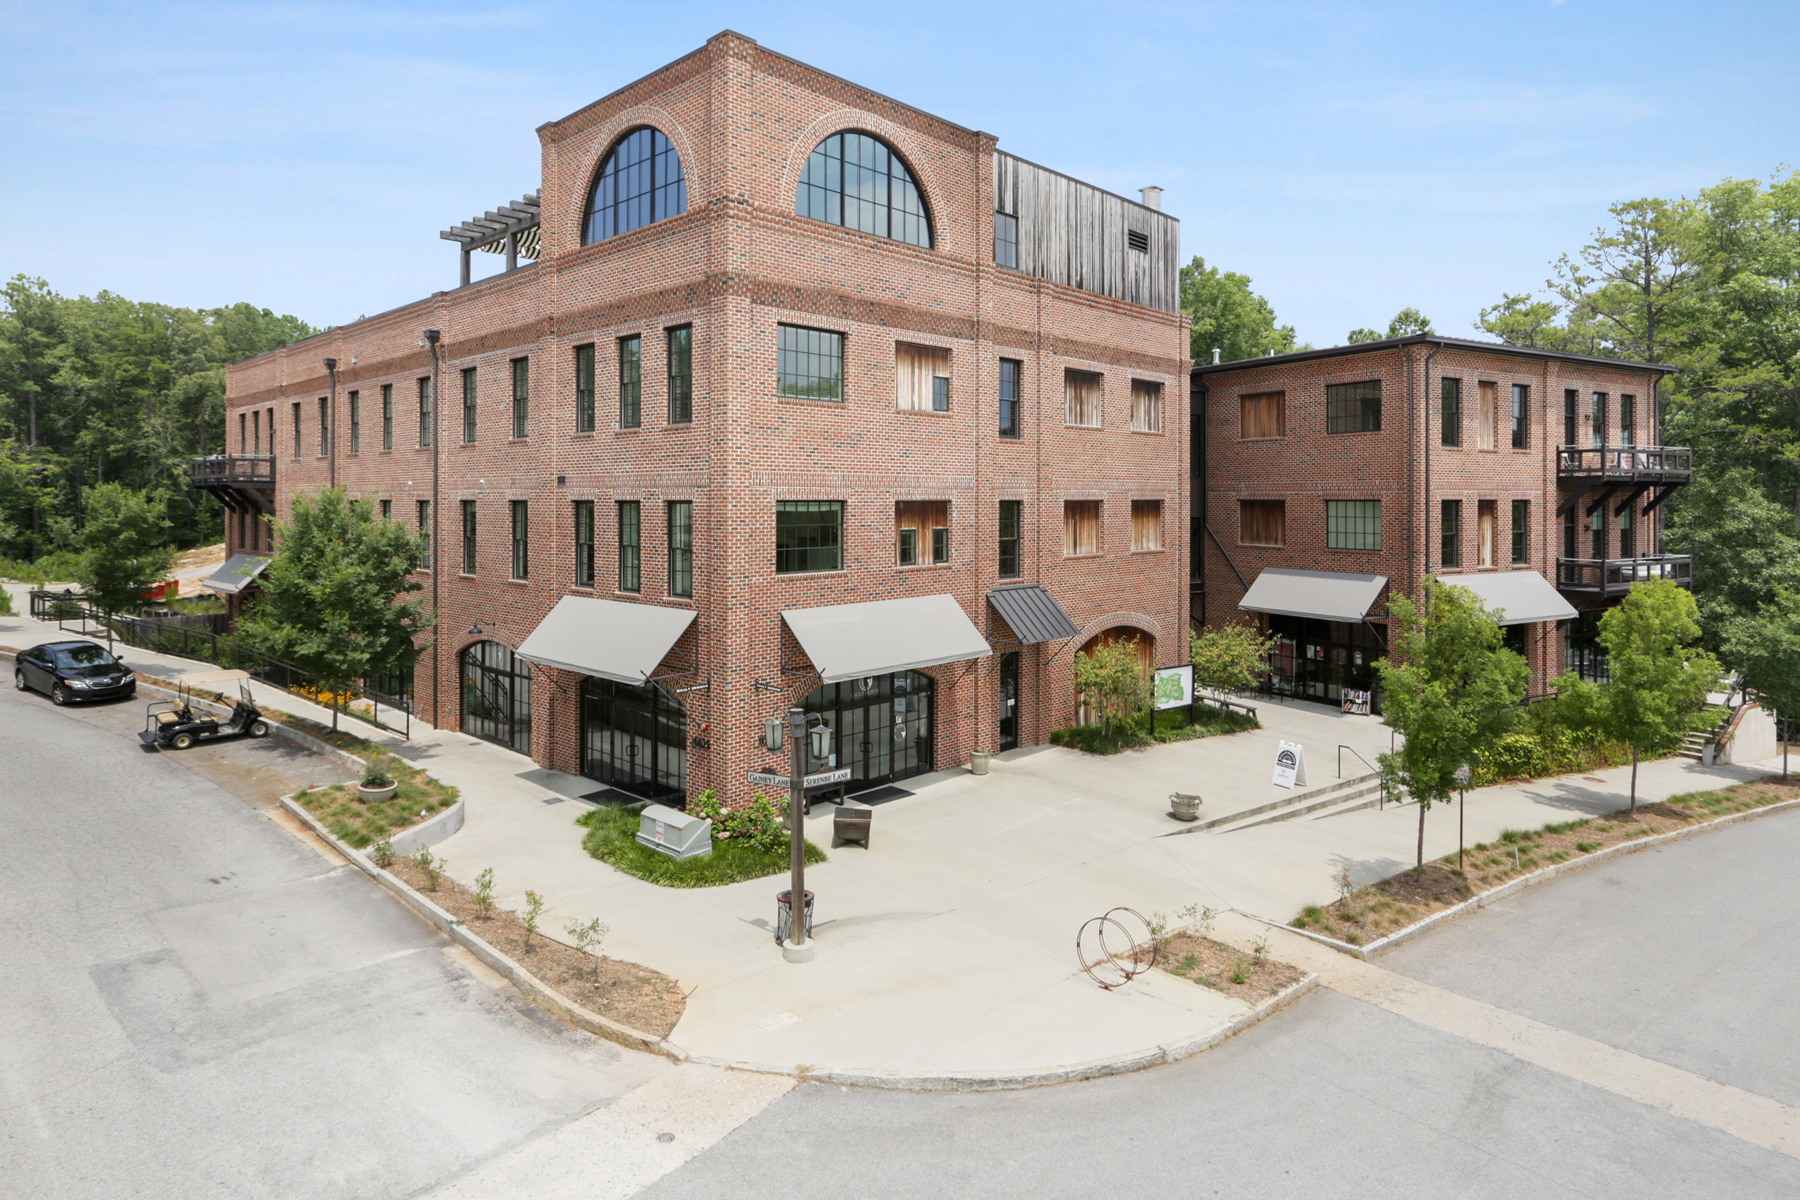 Property voor Verkoop op Sleek First Floor Studio Condominium in Serenbe Textile Lofts 10625 Serenbe Lane No. 106, Chattahoochee Hills, Georgië 30268 Verenigde Staten